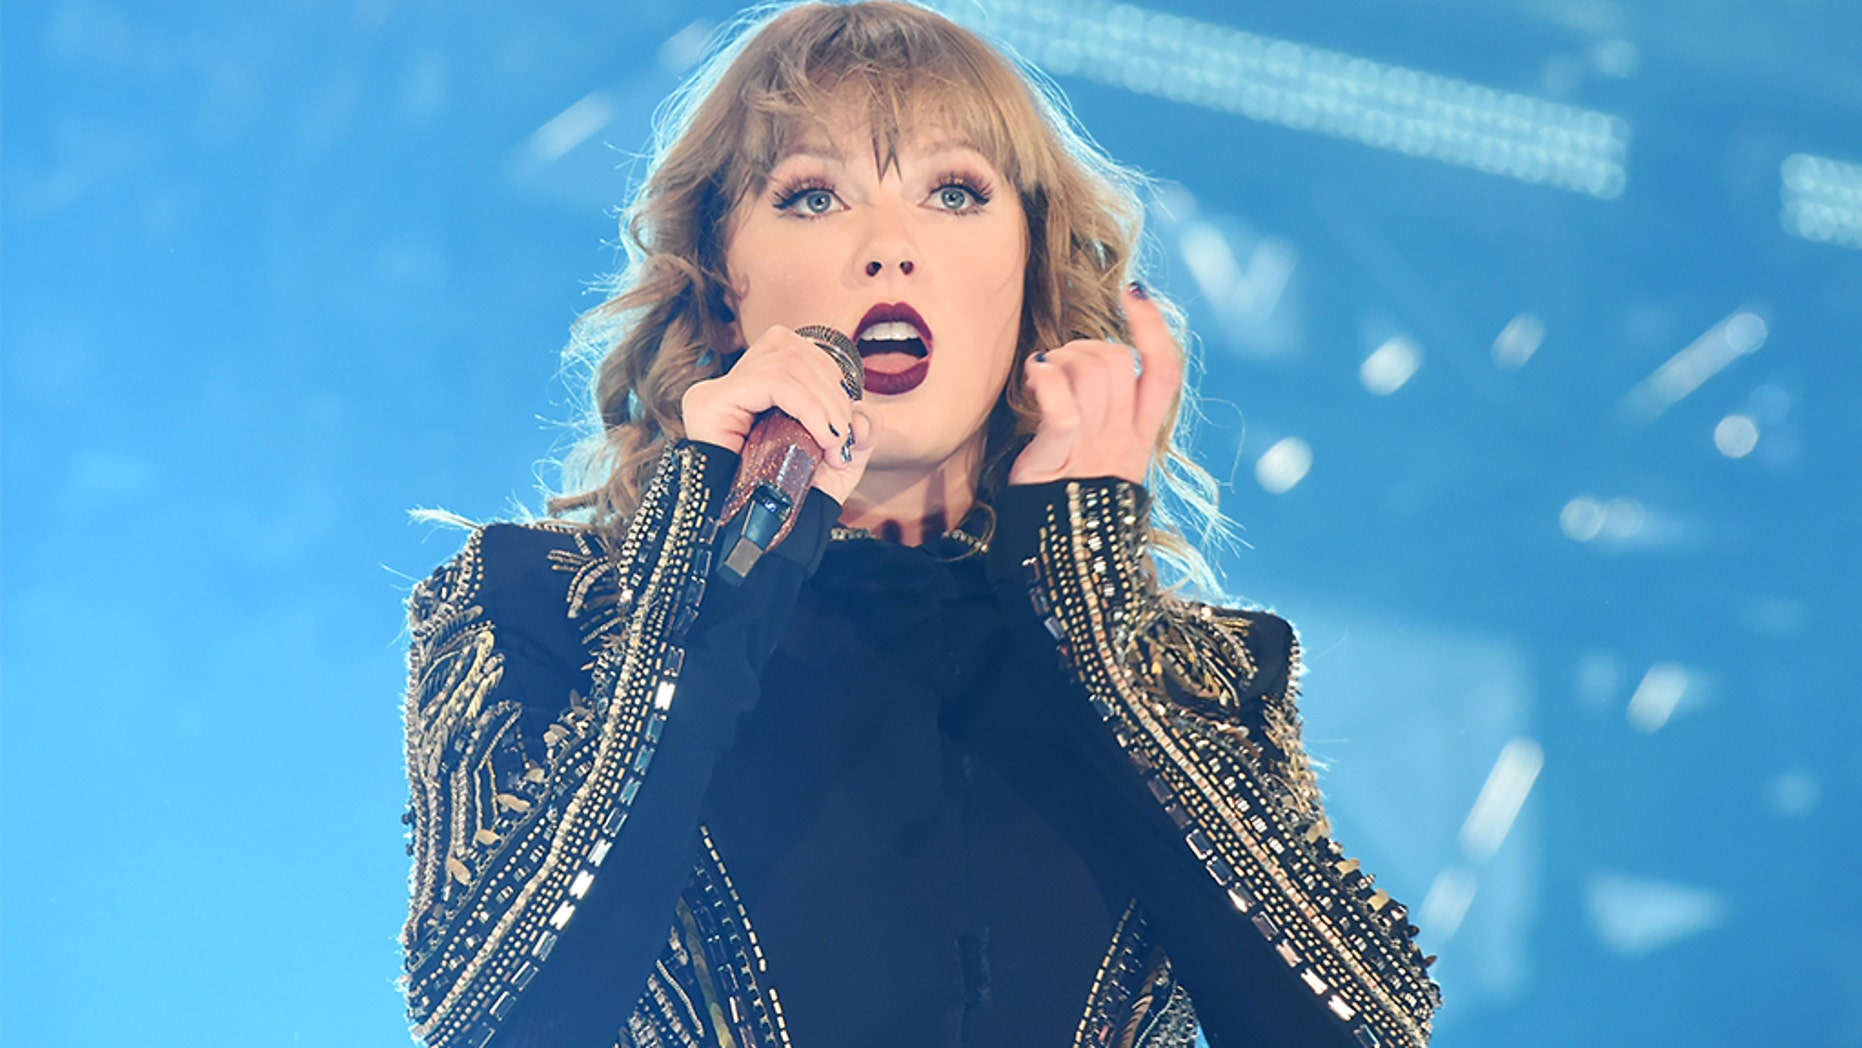 Taylor Swift's Reputation Tour to hit Netflix on New Year's Eve